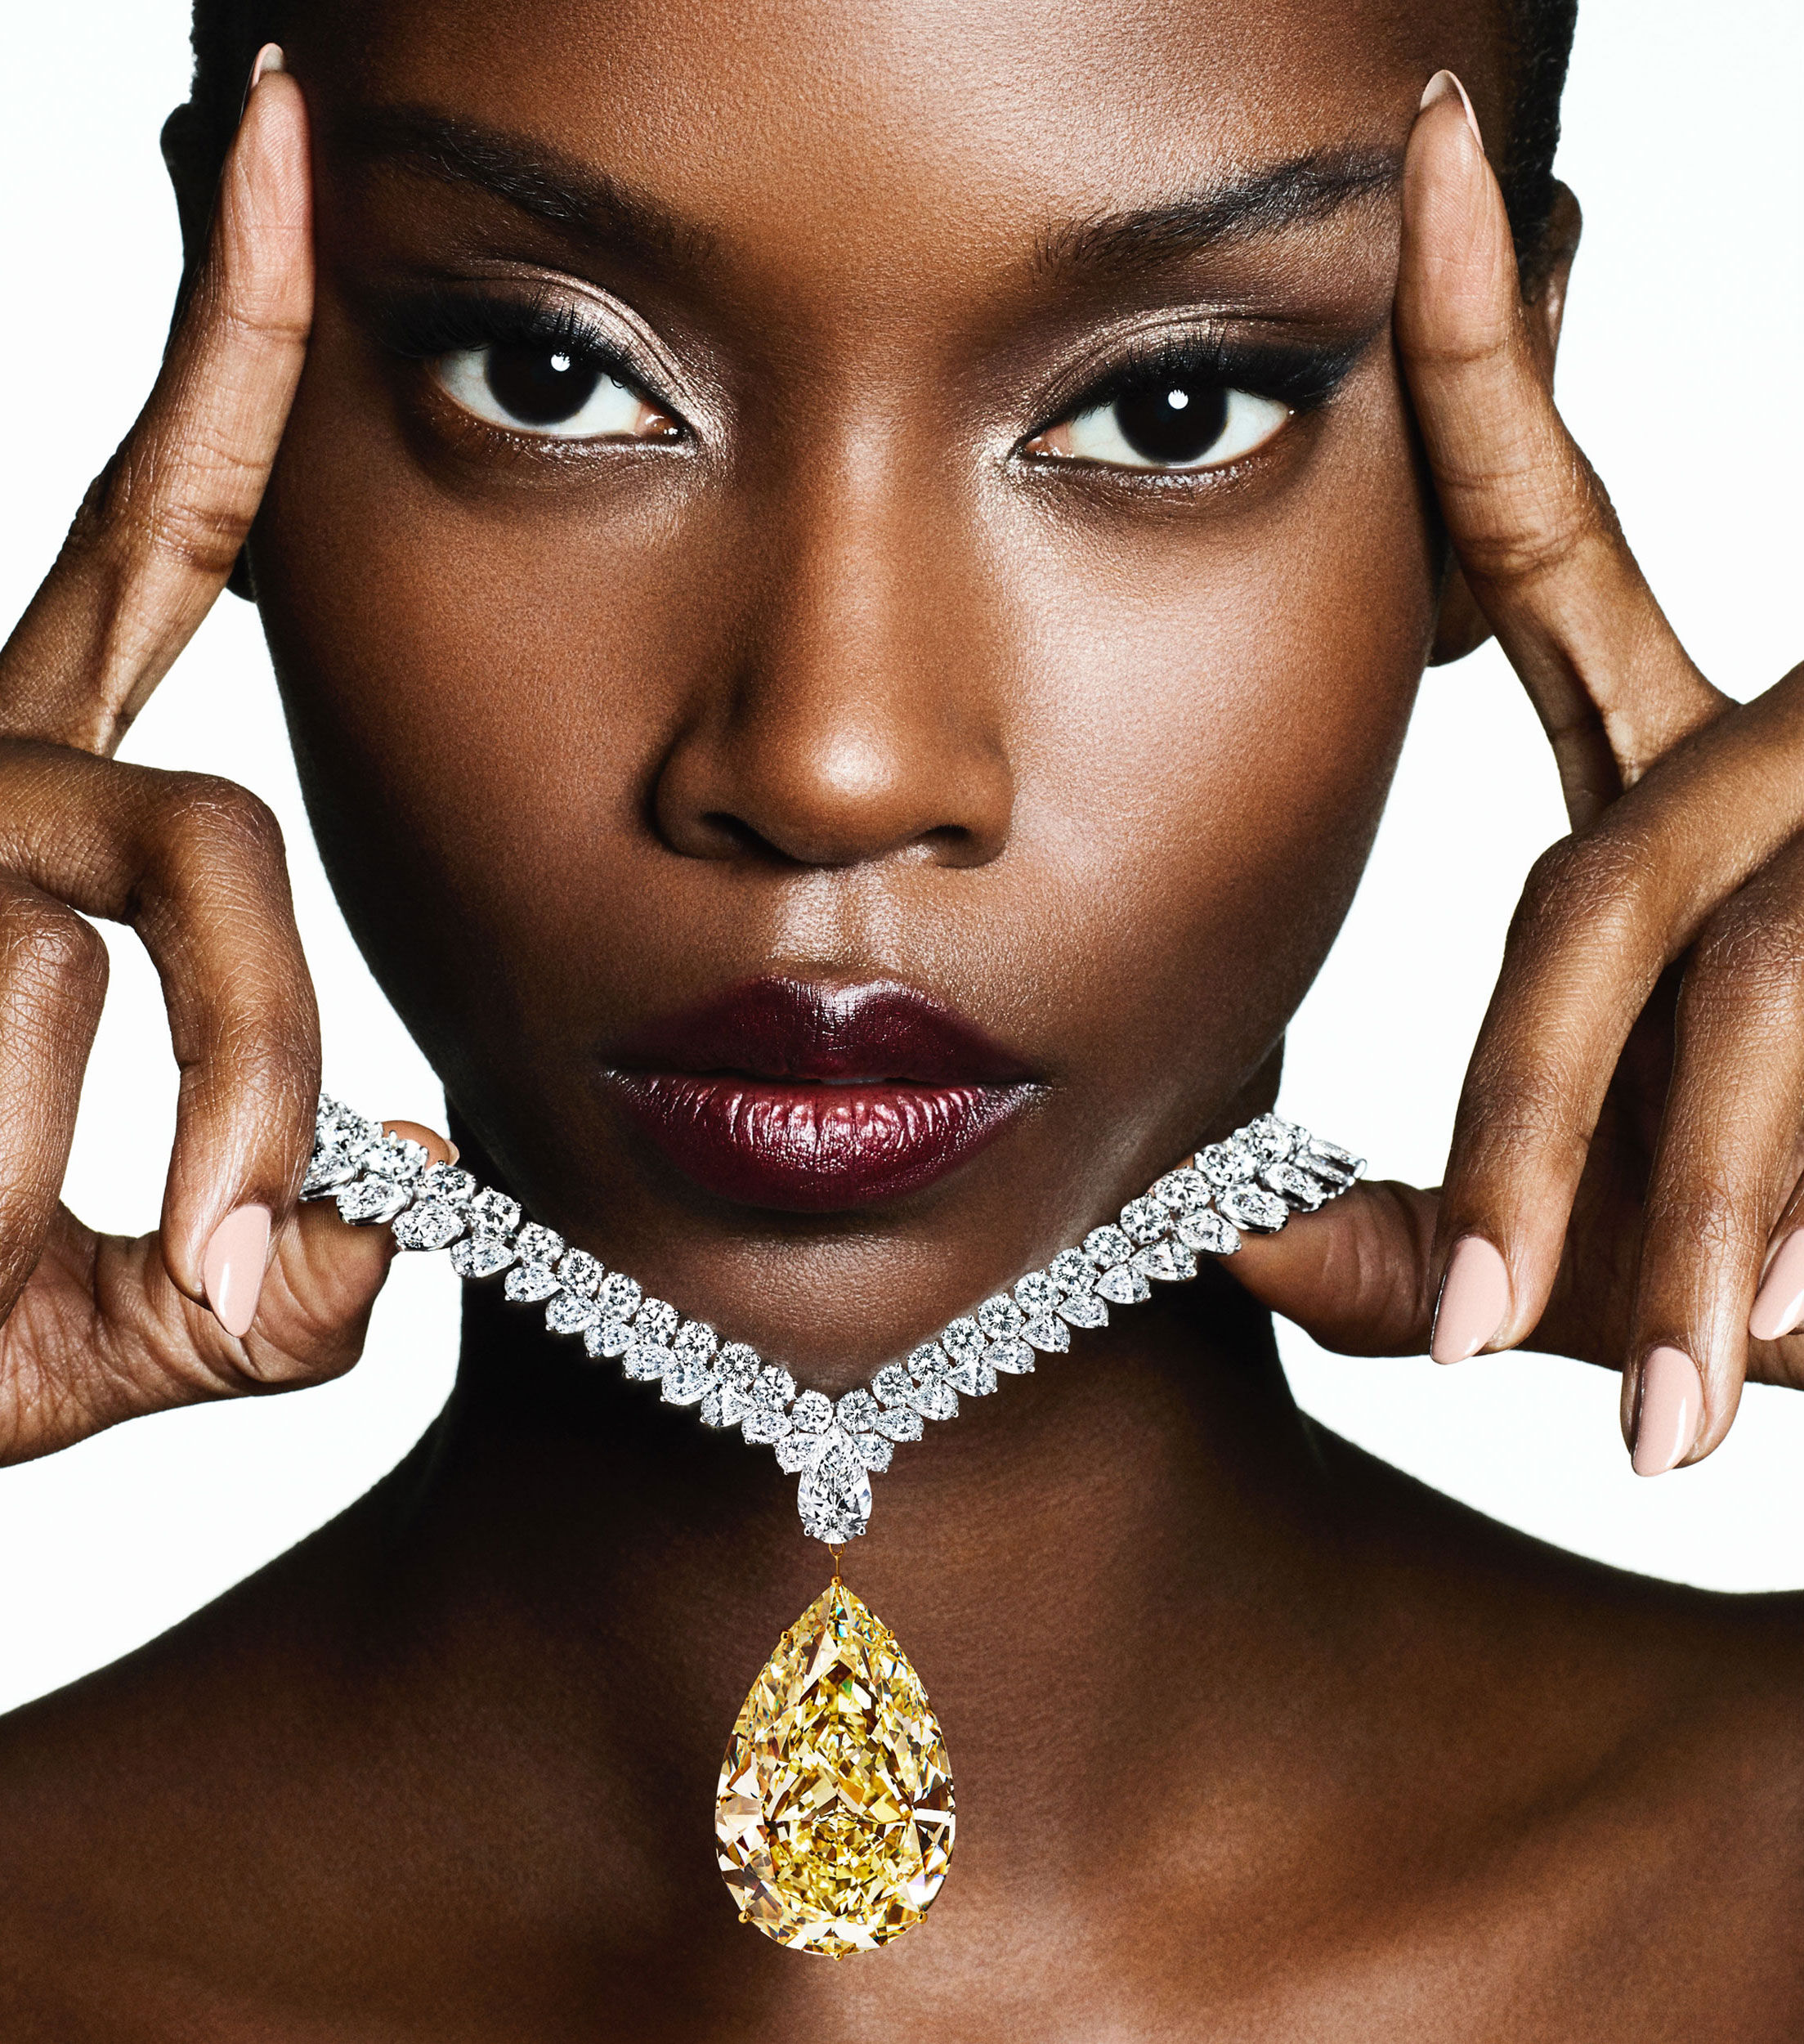 Model wears a Graff high jewellery yellow and white diamond necklace